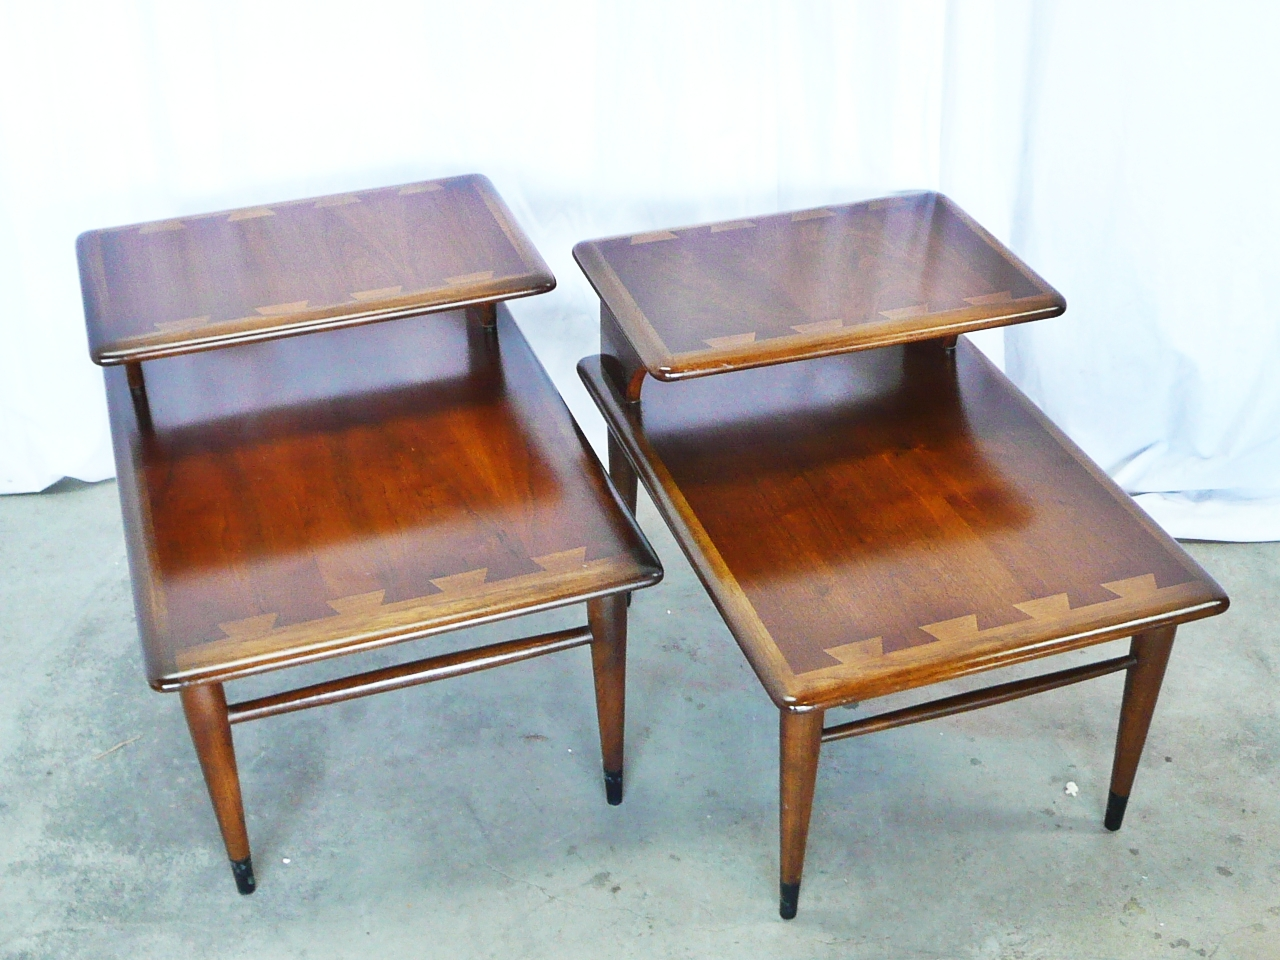 Modern mid century danish vintage furniture shop used for Retro side table